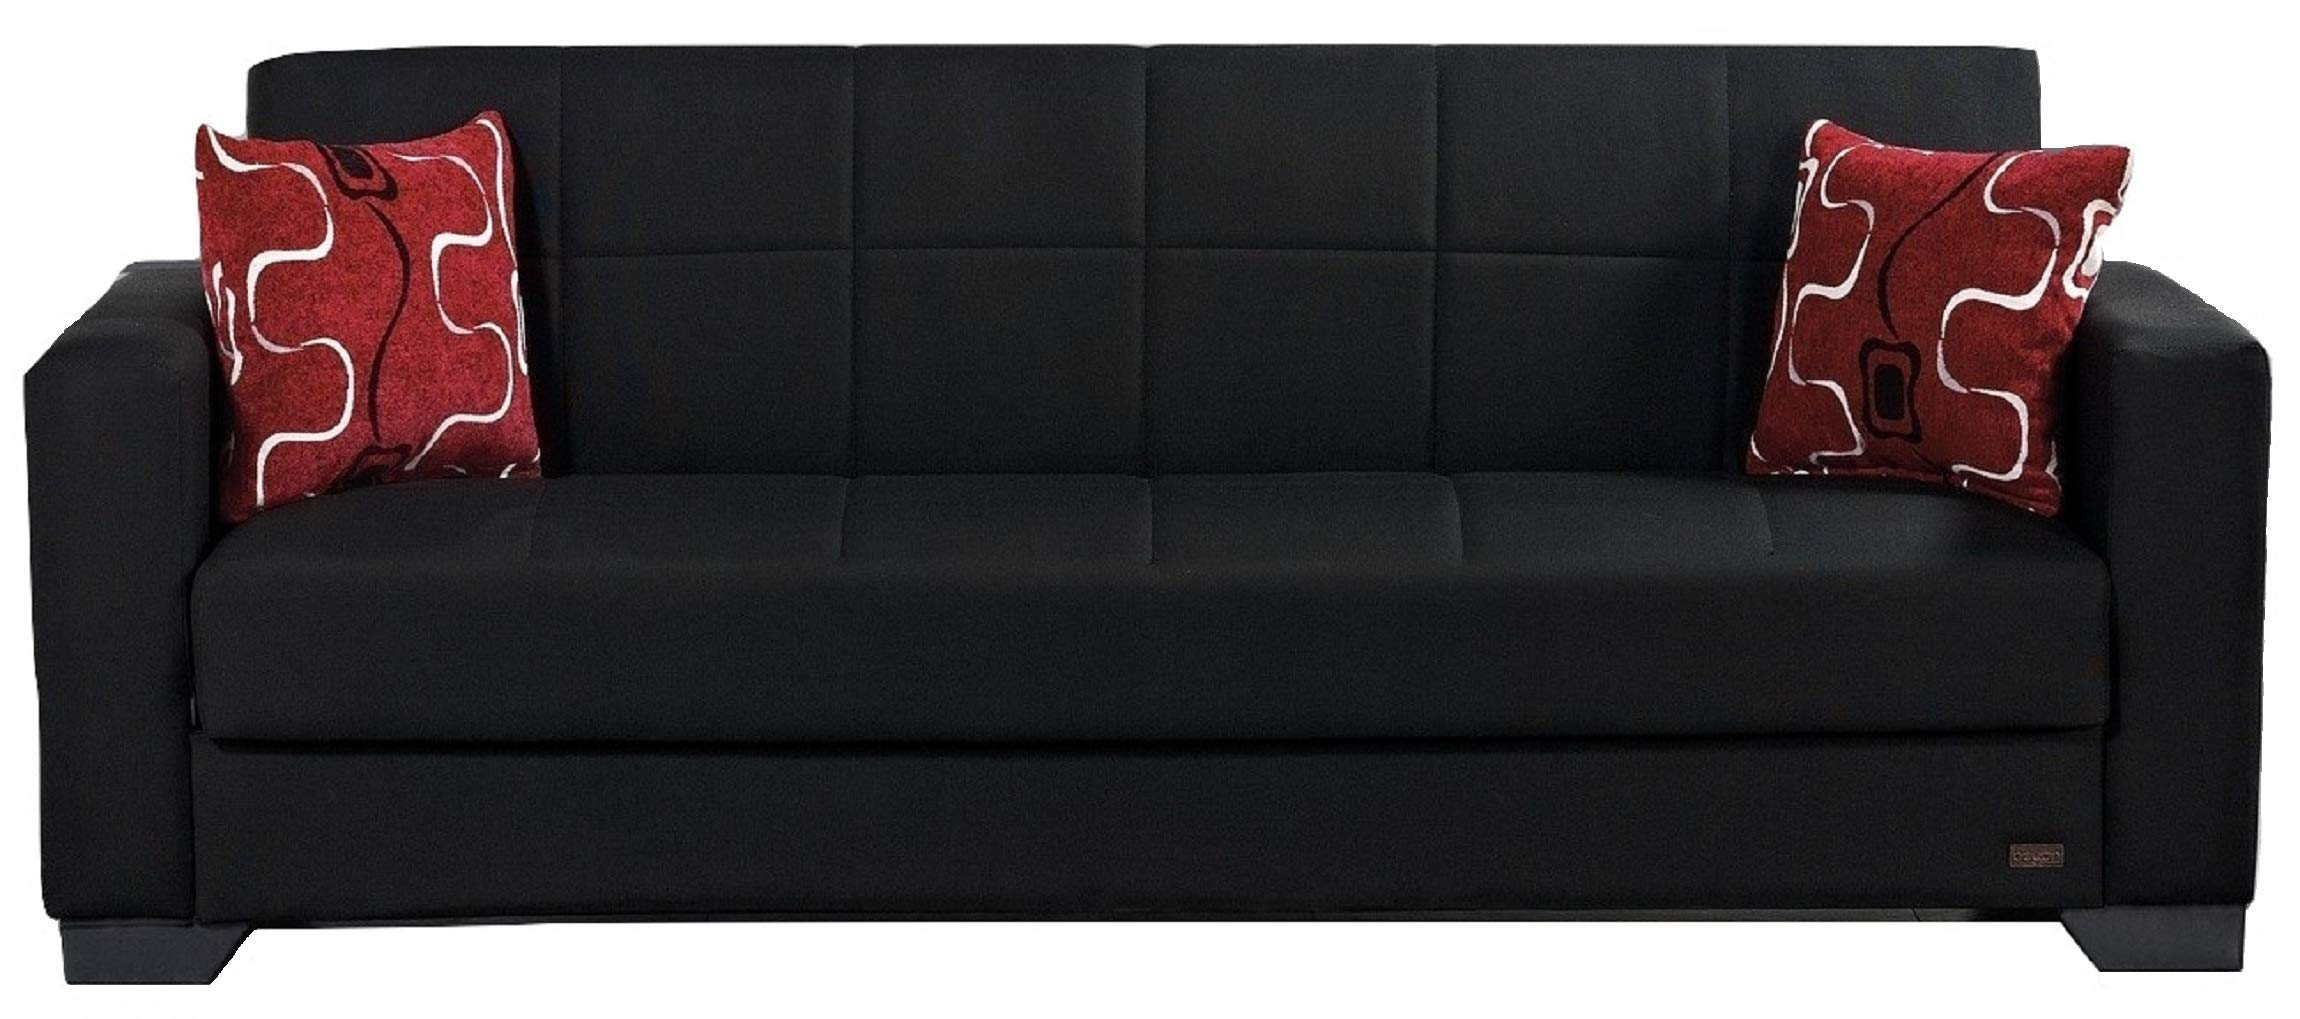 BEYAN SB 2019 Gray Vermont Modern Chenille Fabric Upholstered Convertible  Sofa Bed with Storage | Jodyshop